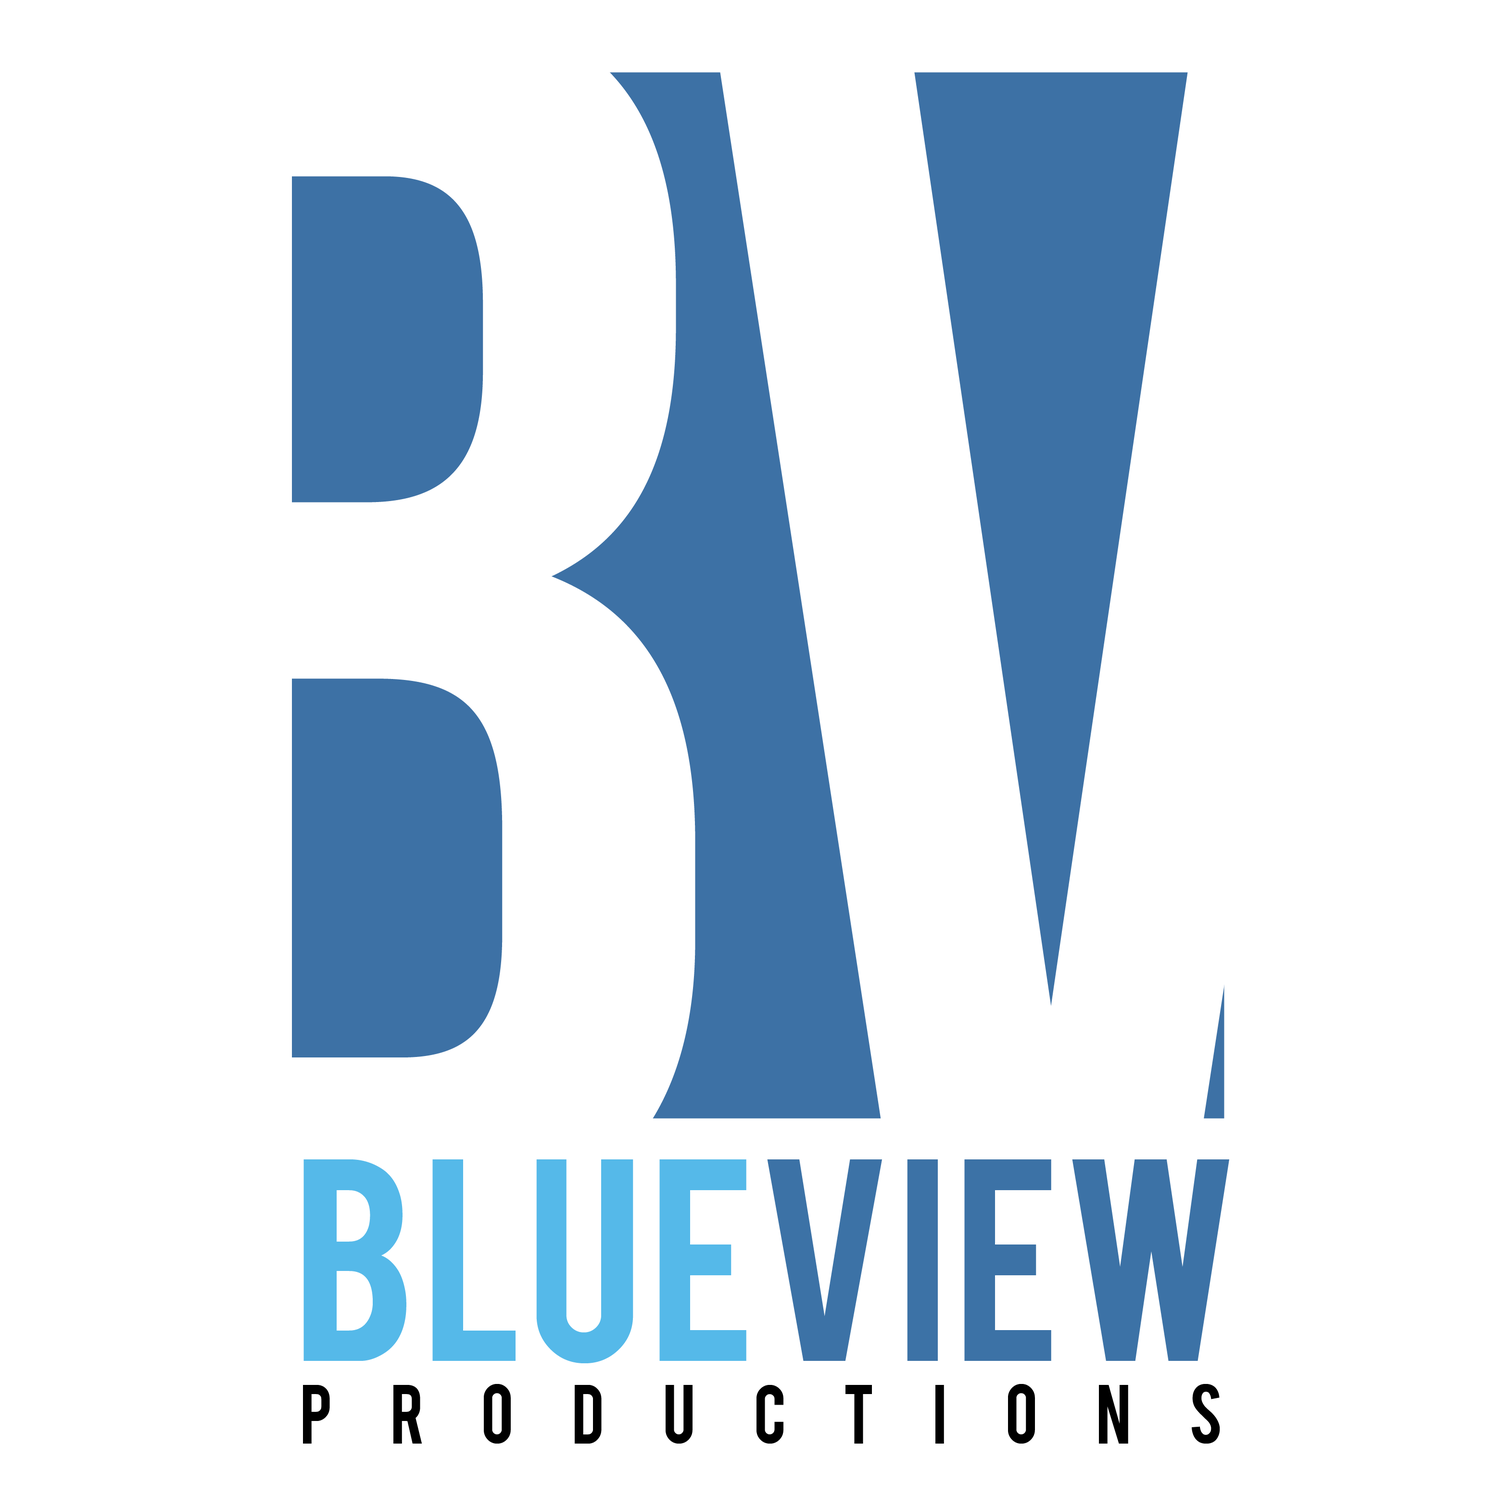 BlueView